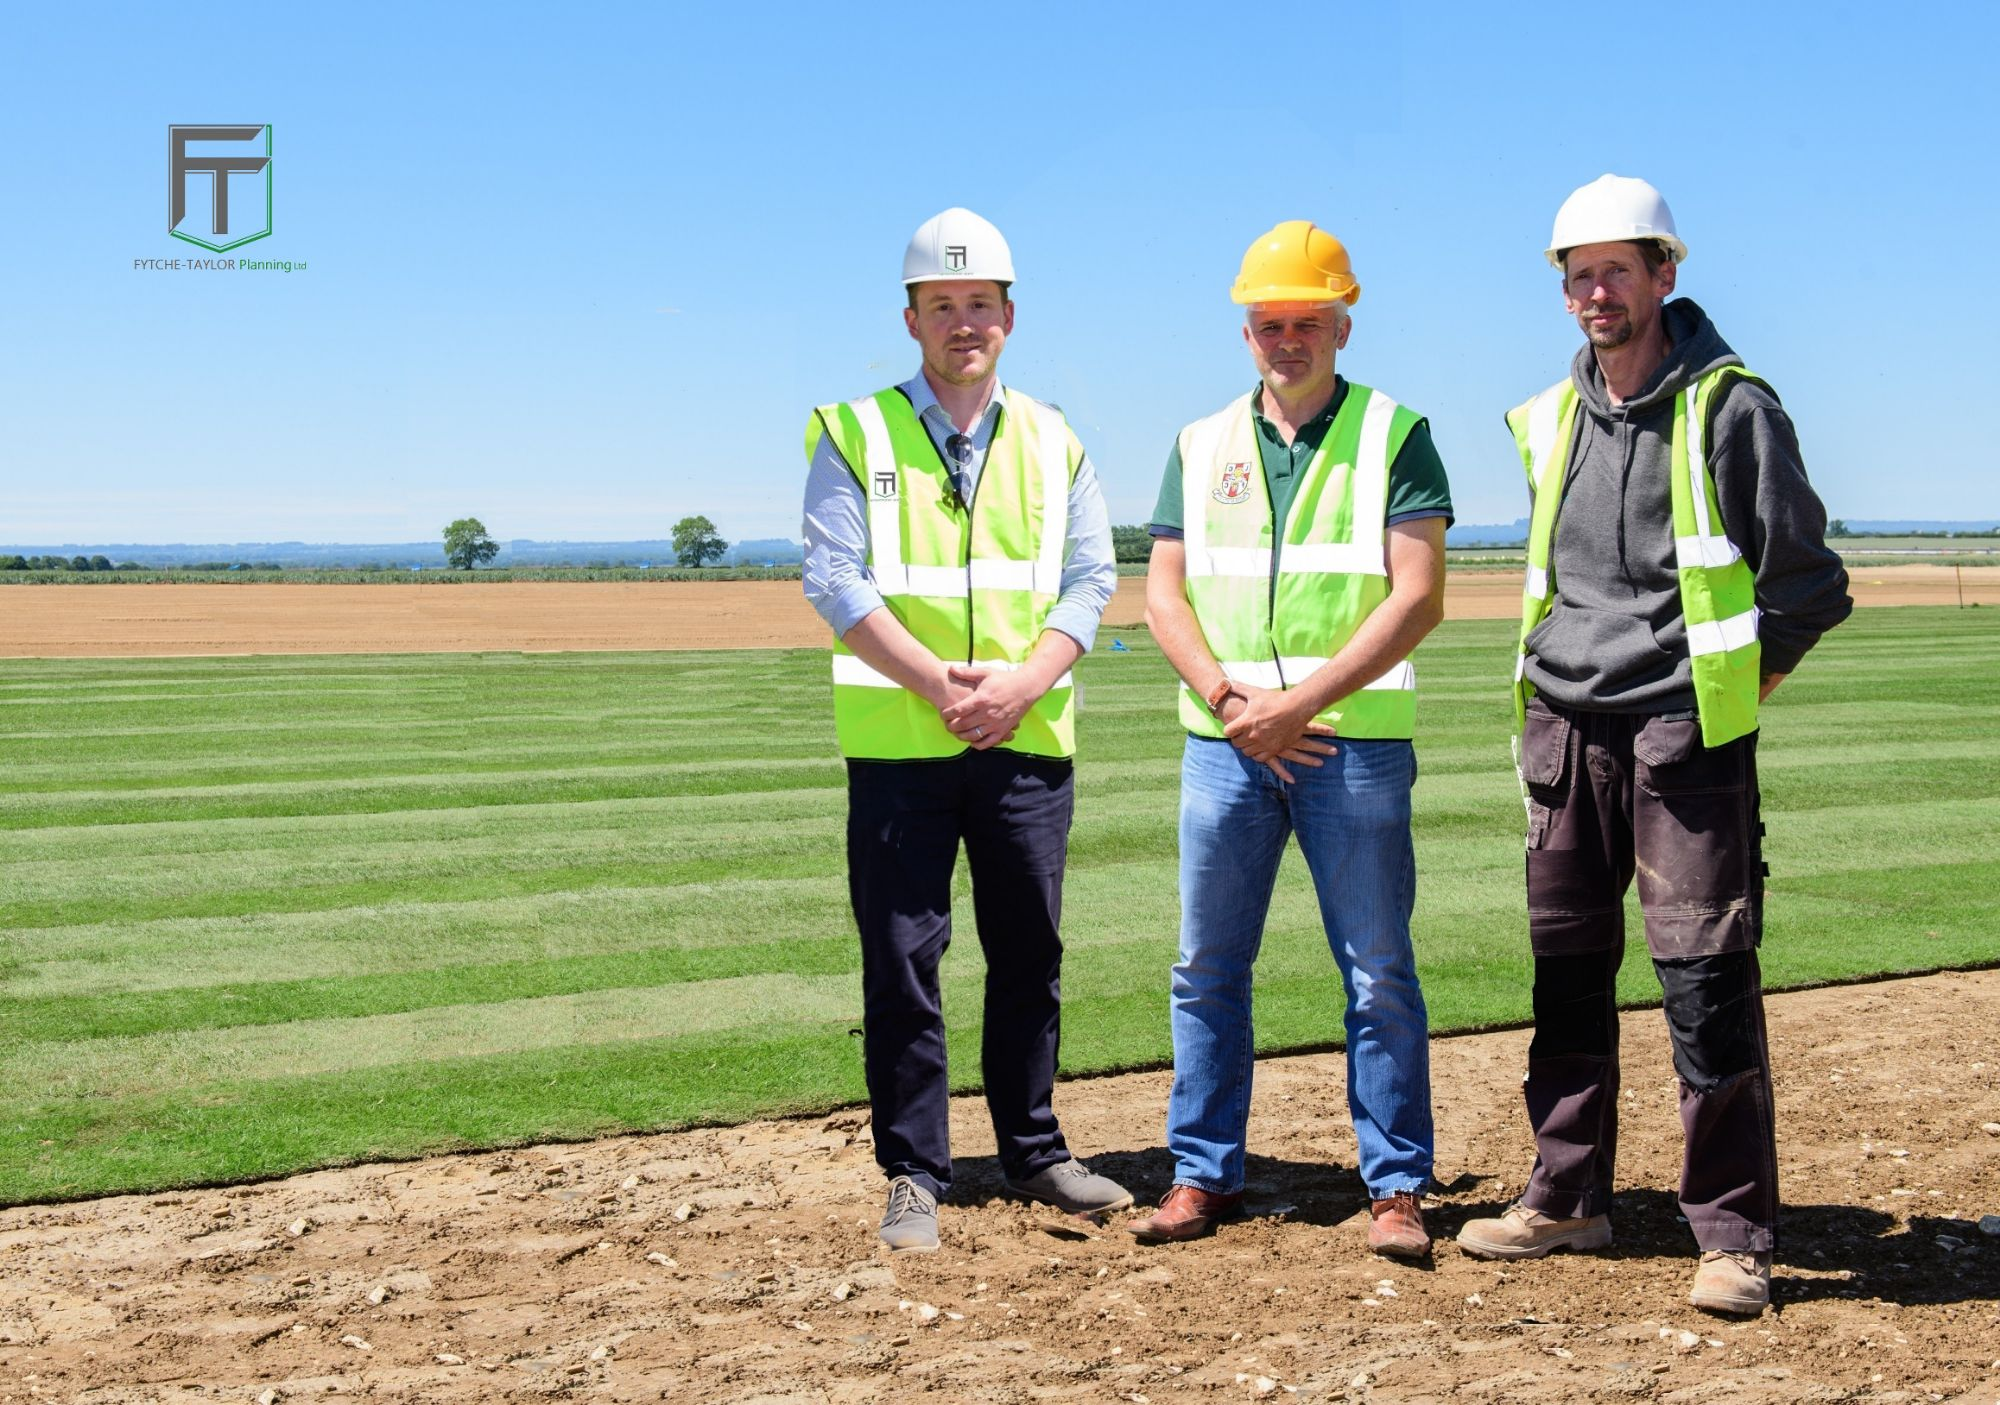 Managing Director Oliver Fytche-Taylor with representatives from Lincoln City Football Club during construction of the new Elite Performance & Training Centre